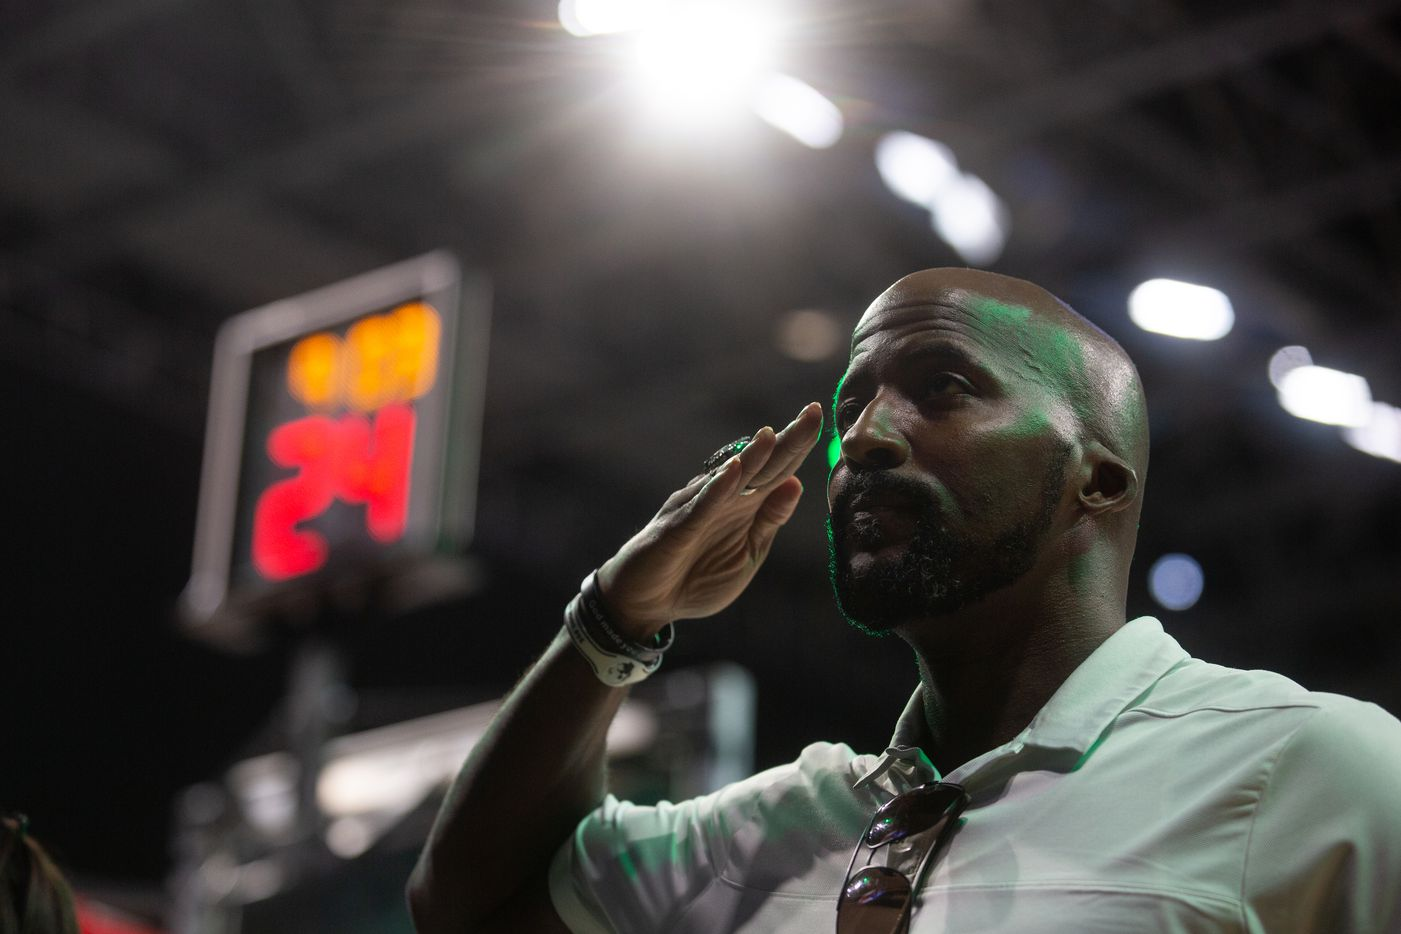 Mikel Ray, a veteran of the U.S. Navy who served 5 and a half years, salutes the flag during the Star-Spangled Banner before the Dallas Wings game against New York Liberty at College Park Center in Arlington, TX on September 11, 2021.  (Shelby Tauber/Special Contributor)